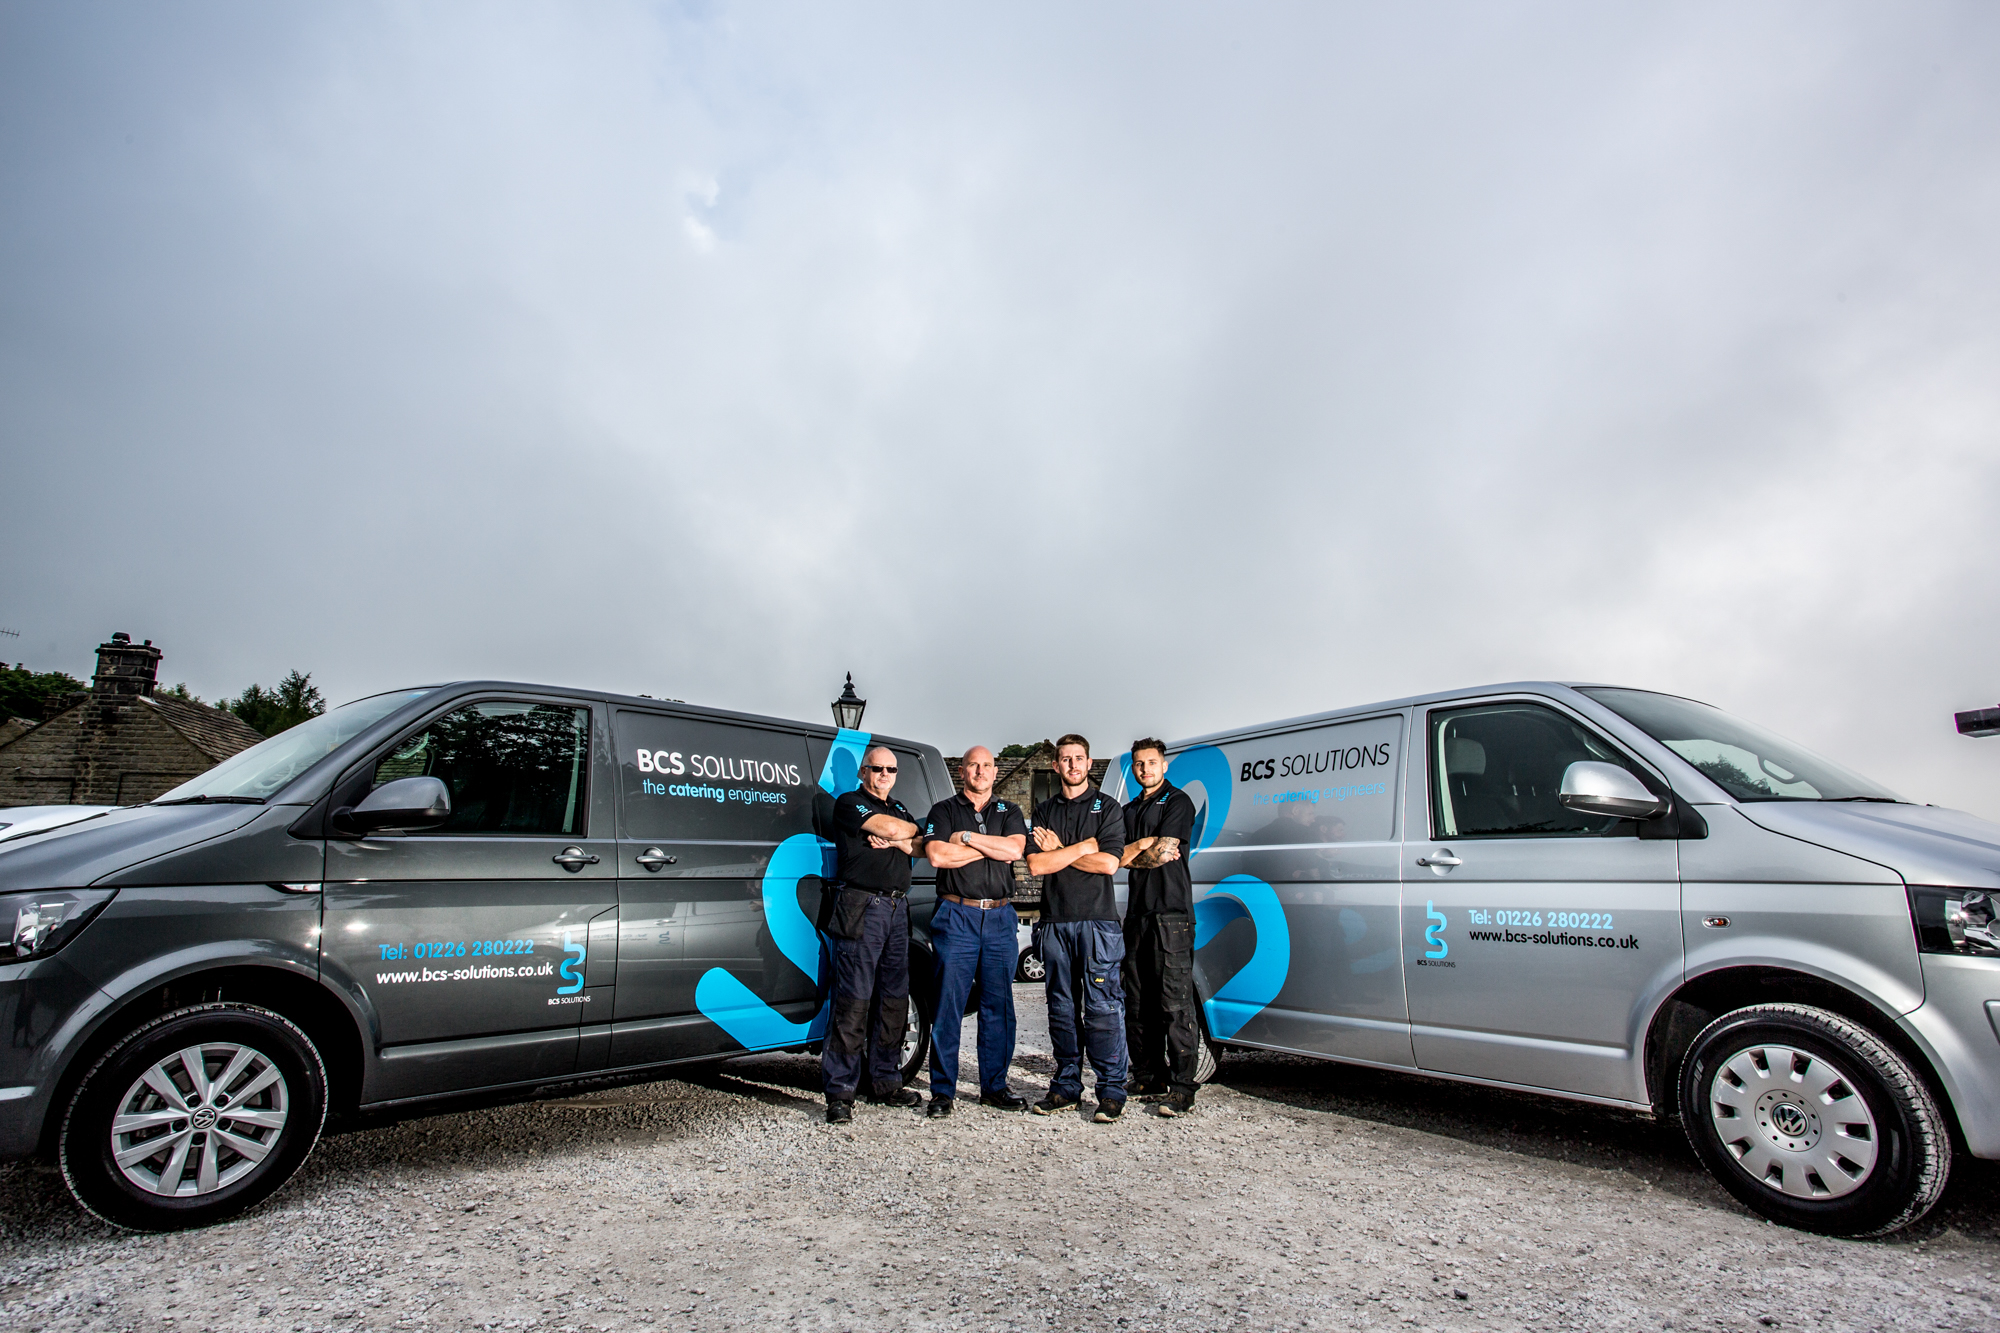 commercial photographers in sheffield yorkshire-13.jpg